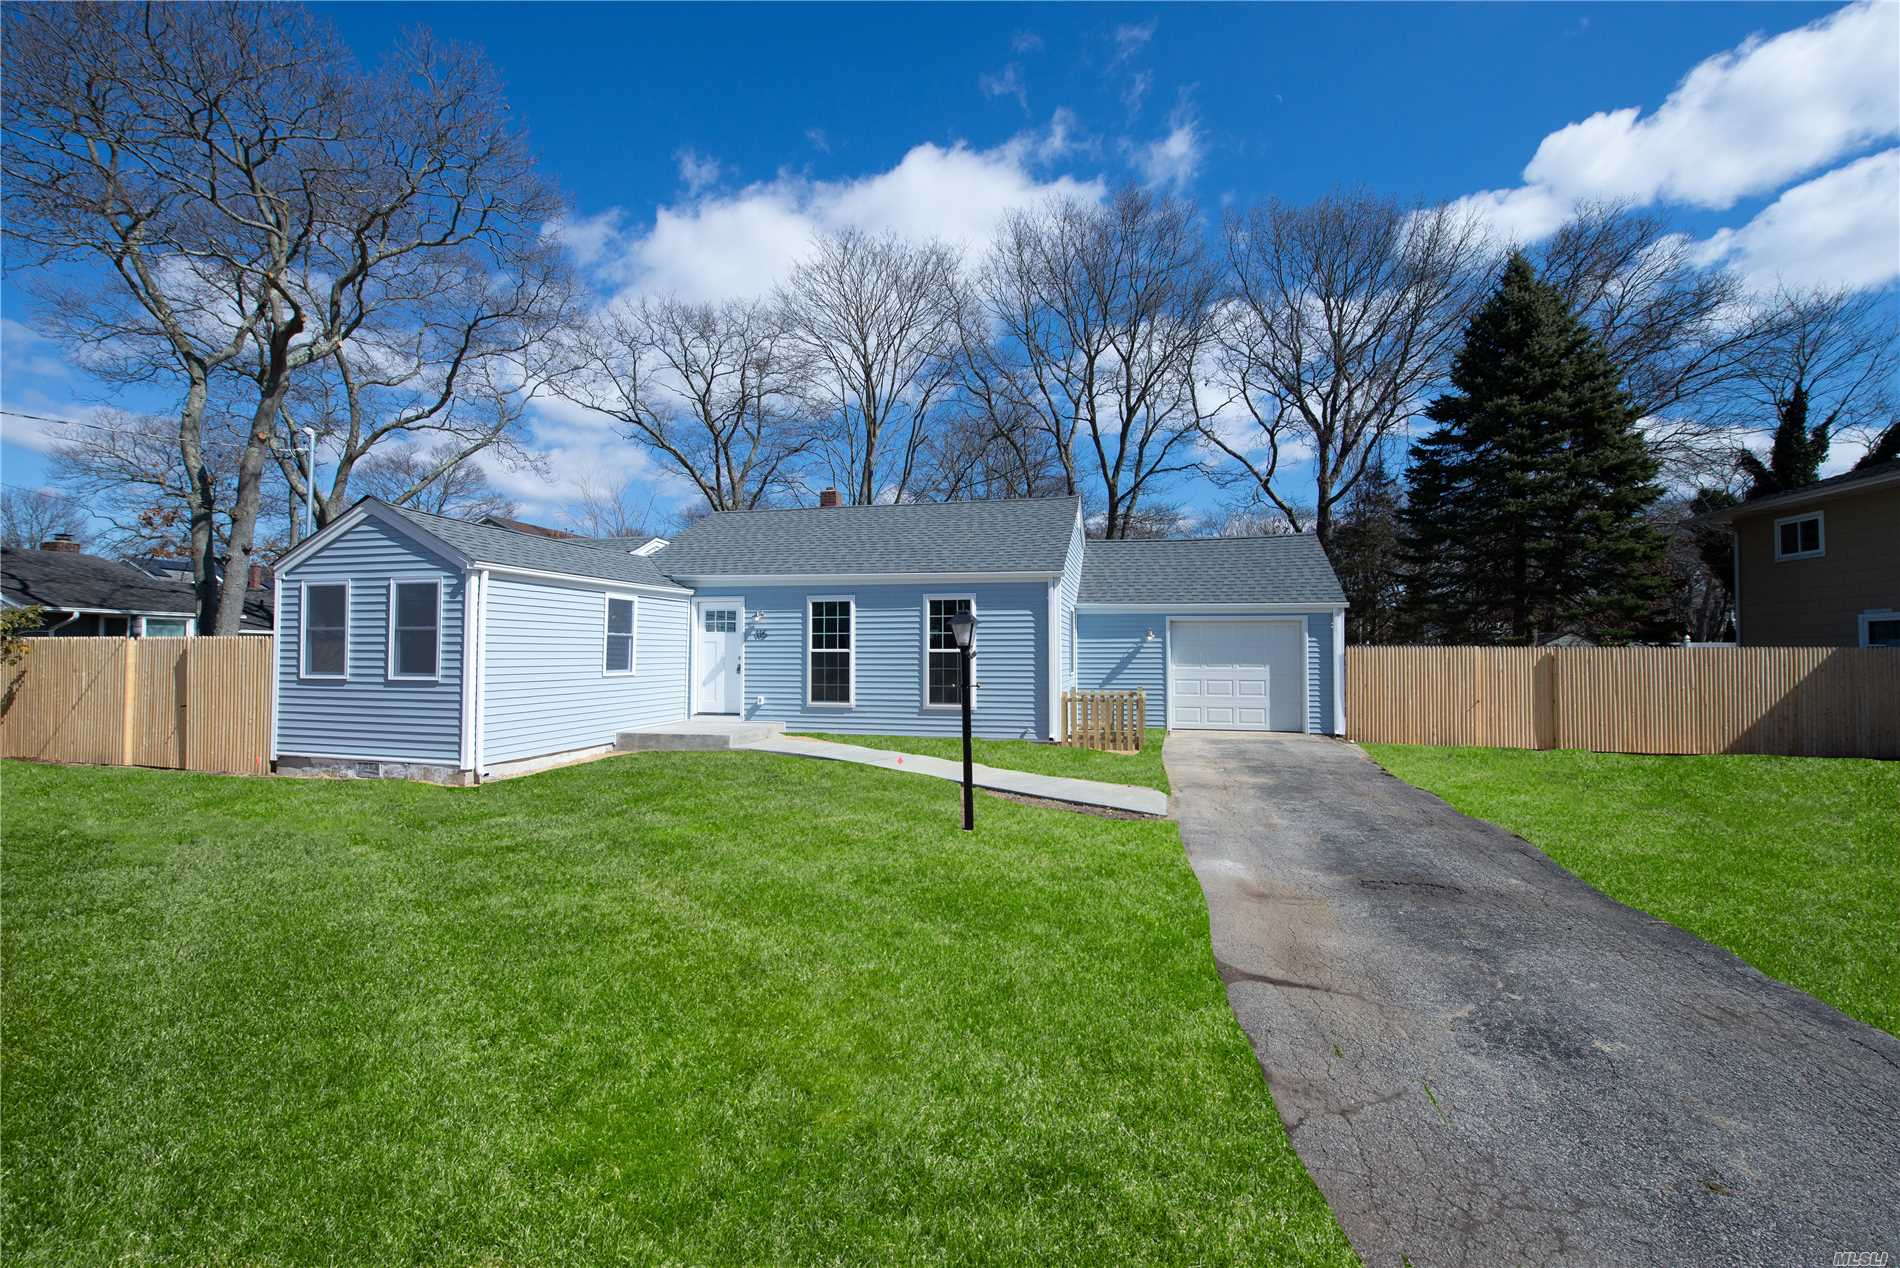 Don't miss this perfect 3br, 2ba, ranch style starter home in Sachem SD. Home features new roof, siding, windows, handscraped floors, white shaker kit, SS appliances, quartz counters, master w/ba, custom tile bath's, an OFP and cathedral ceilings. part finished basement w/egress windows. Builder spared no expense. great backyard with patio, perfect for entertaining. this home will not last!!!